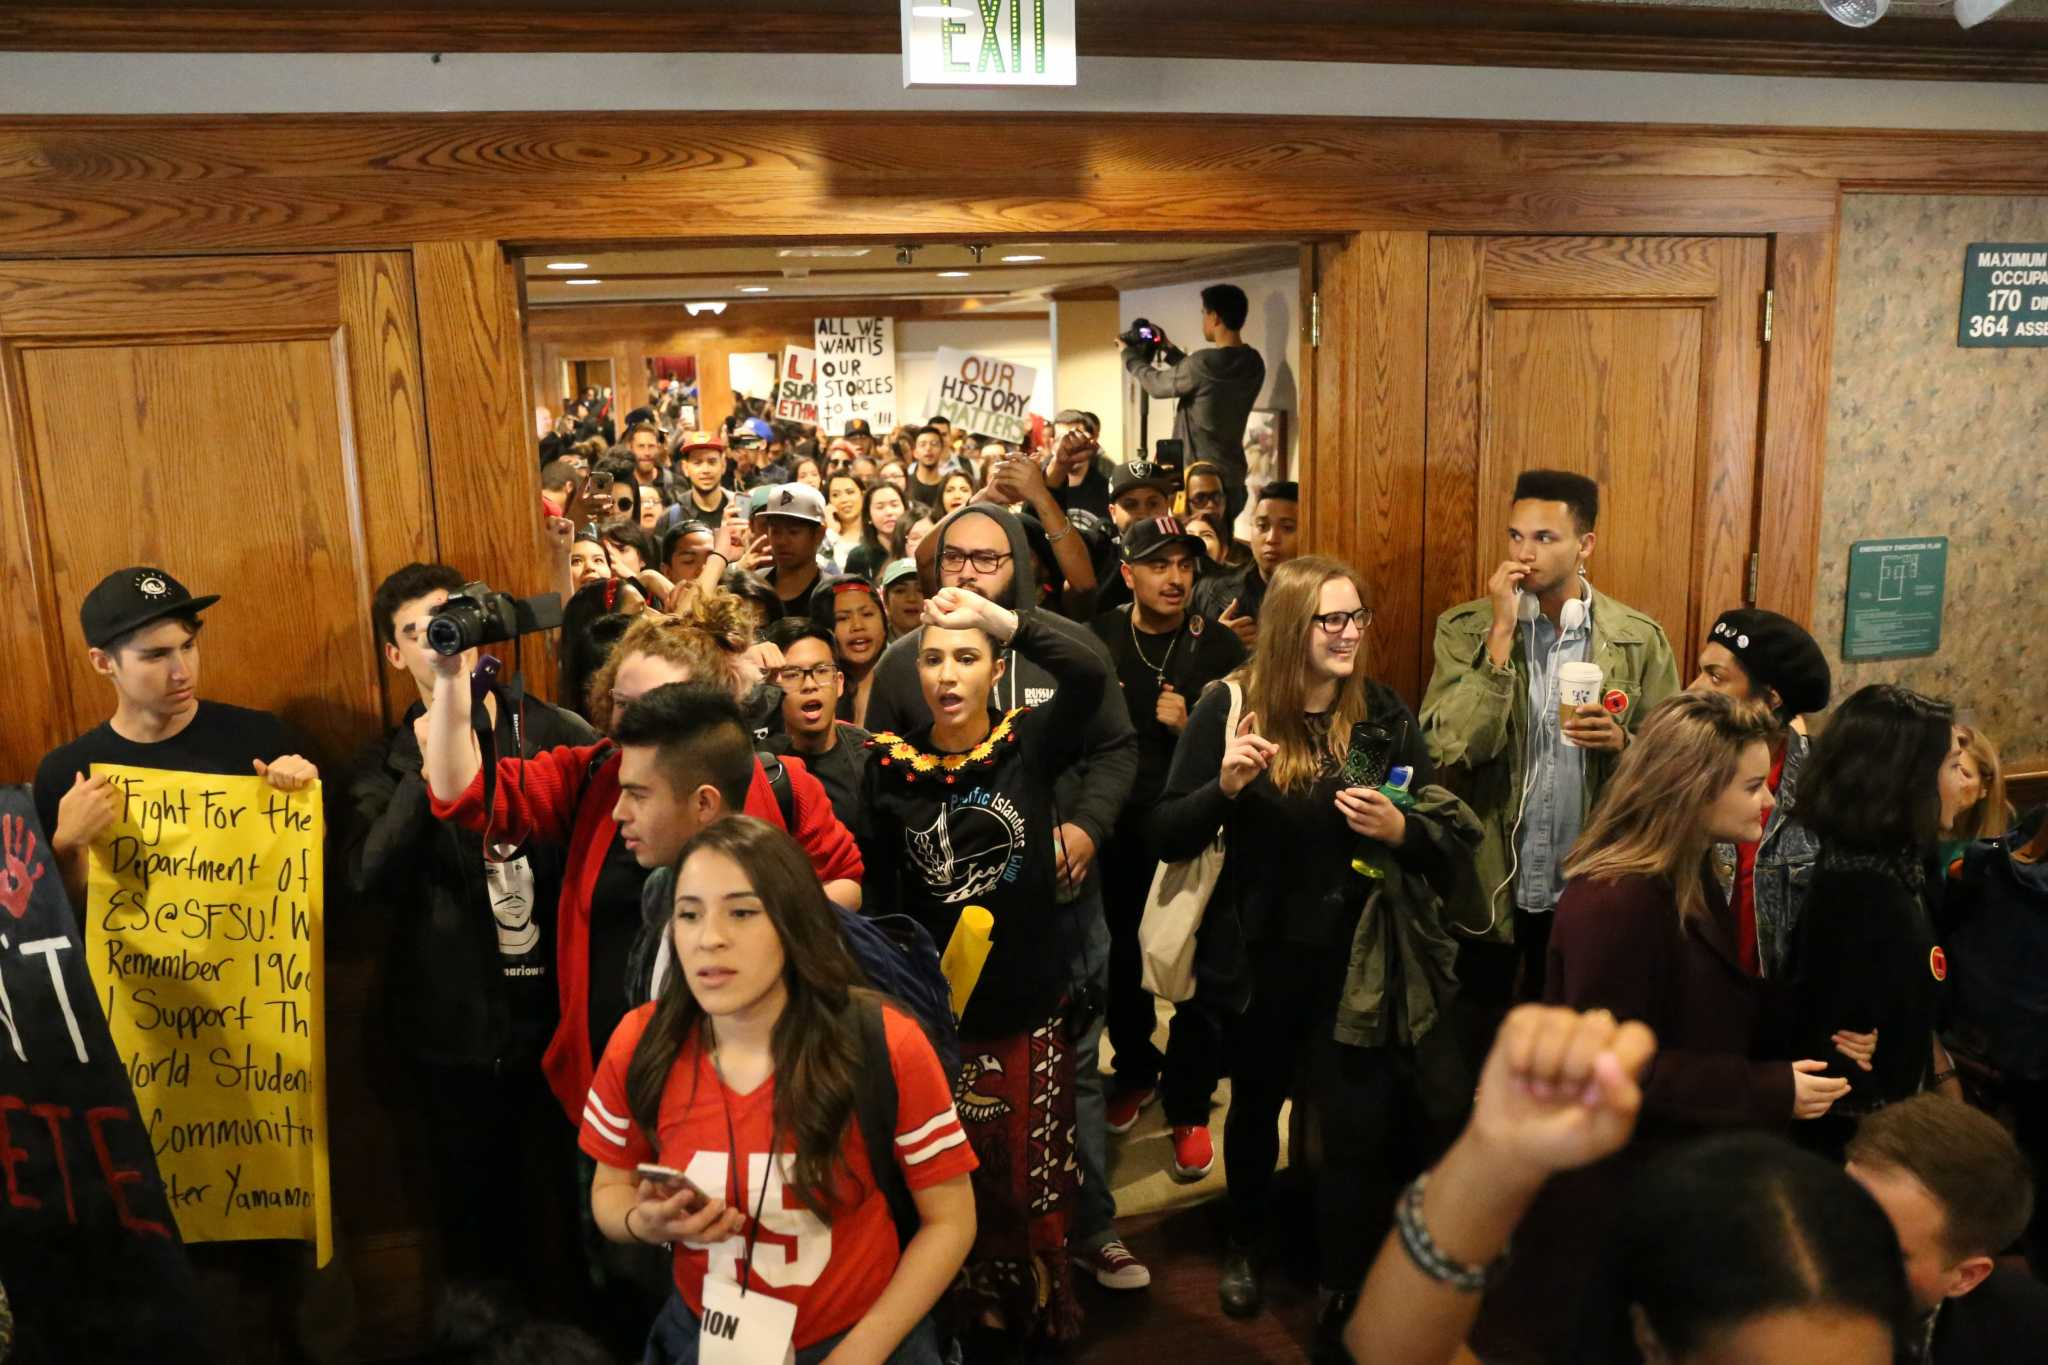 Students and faculty rally as potential cuts threaten ethnic studies